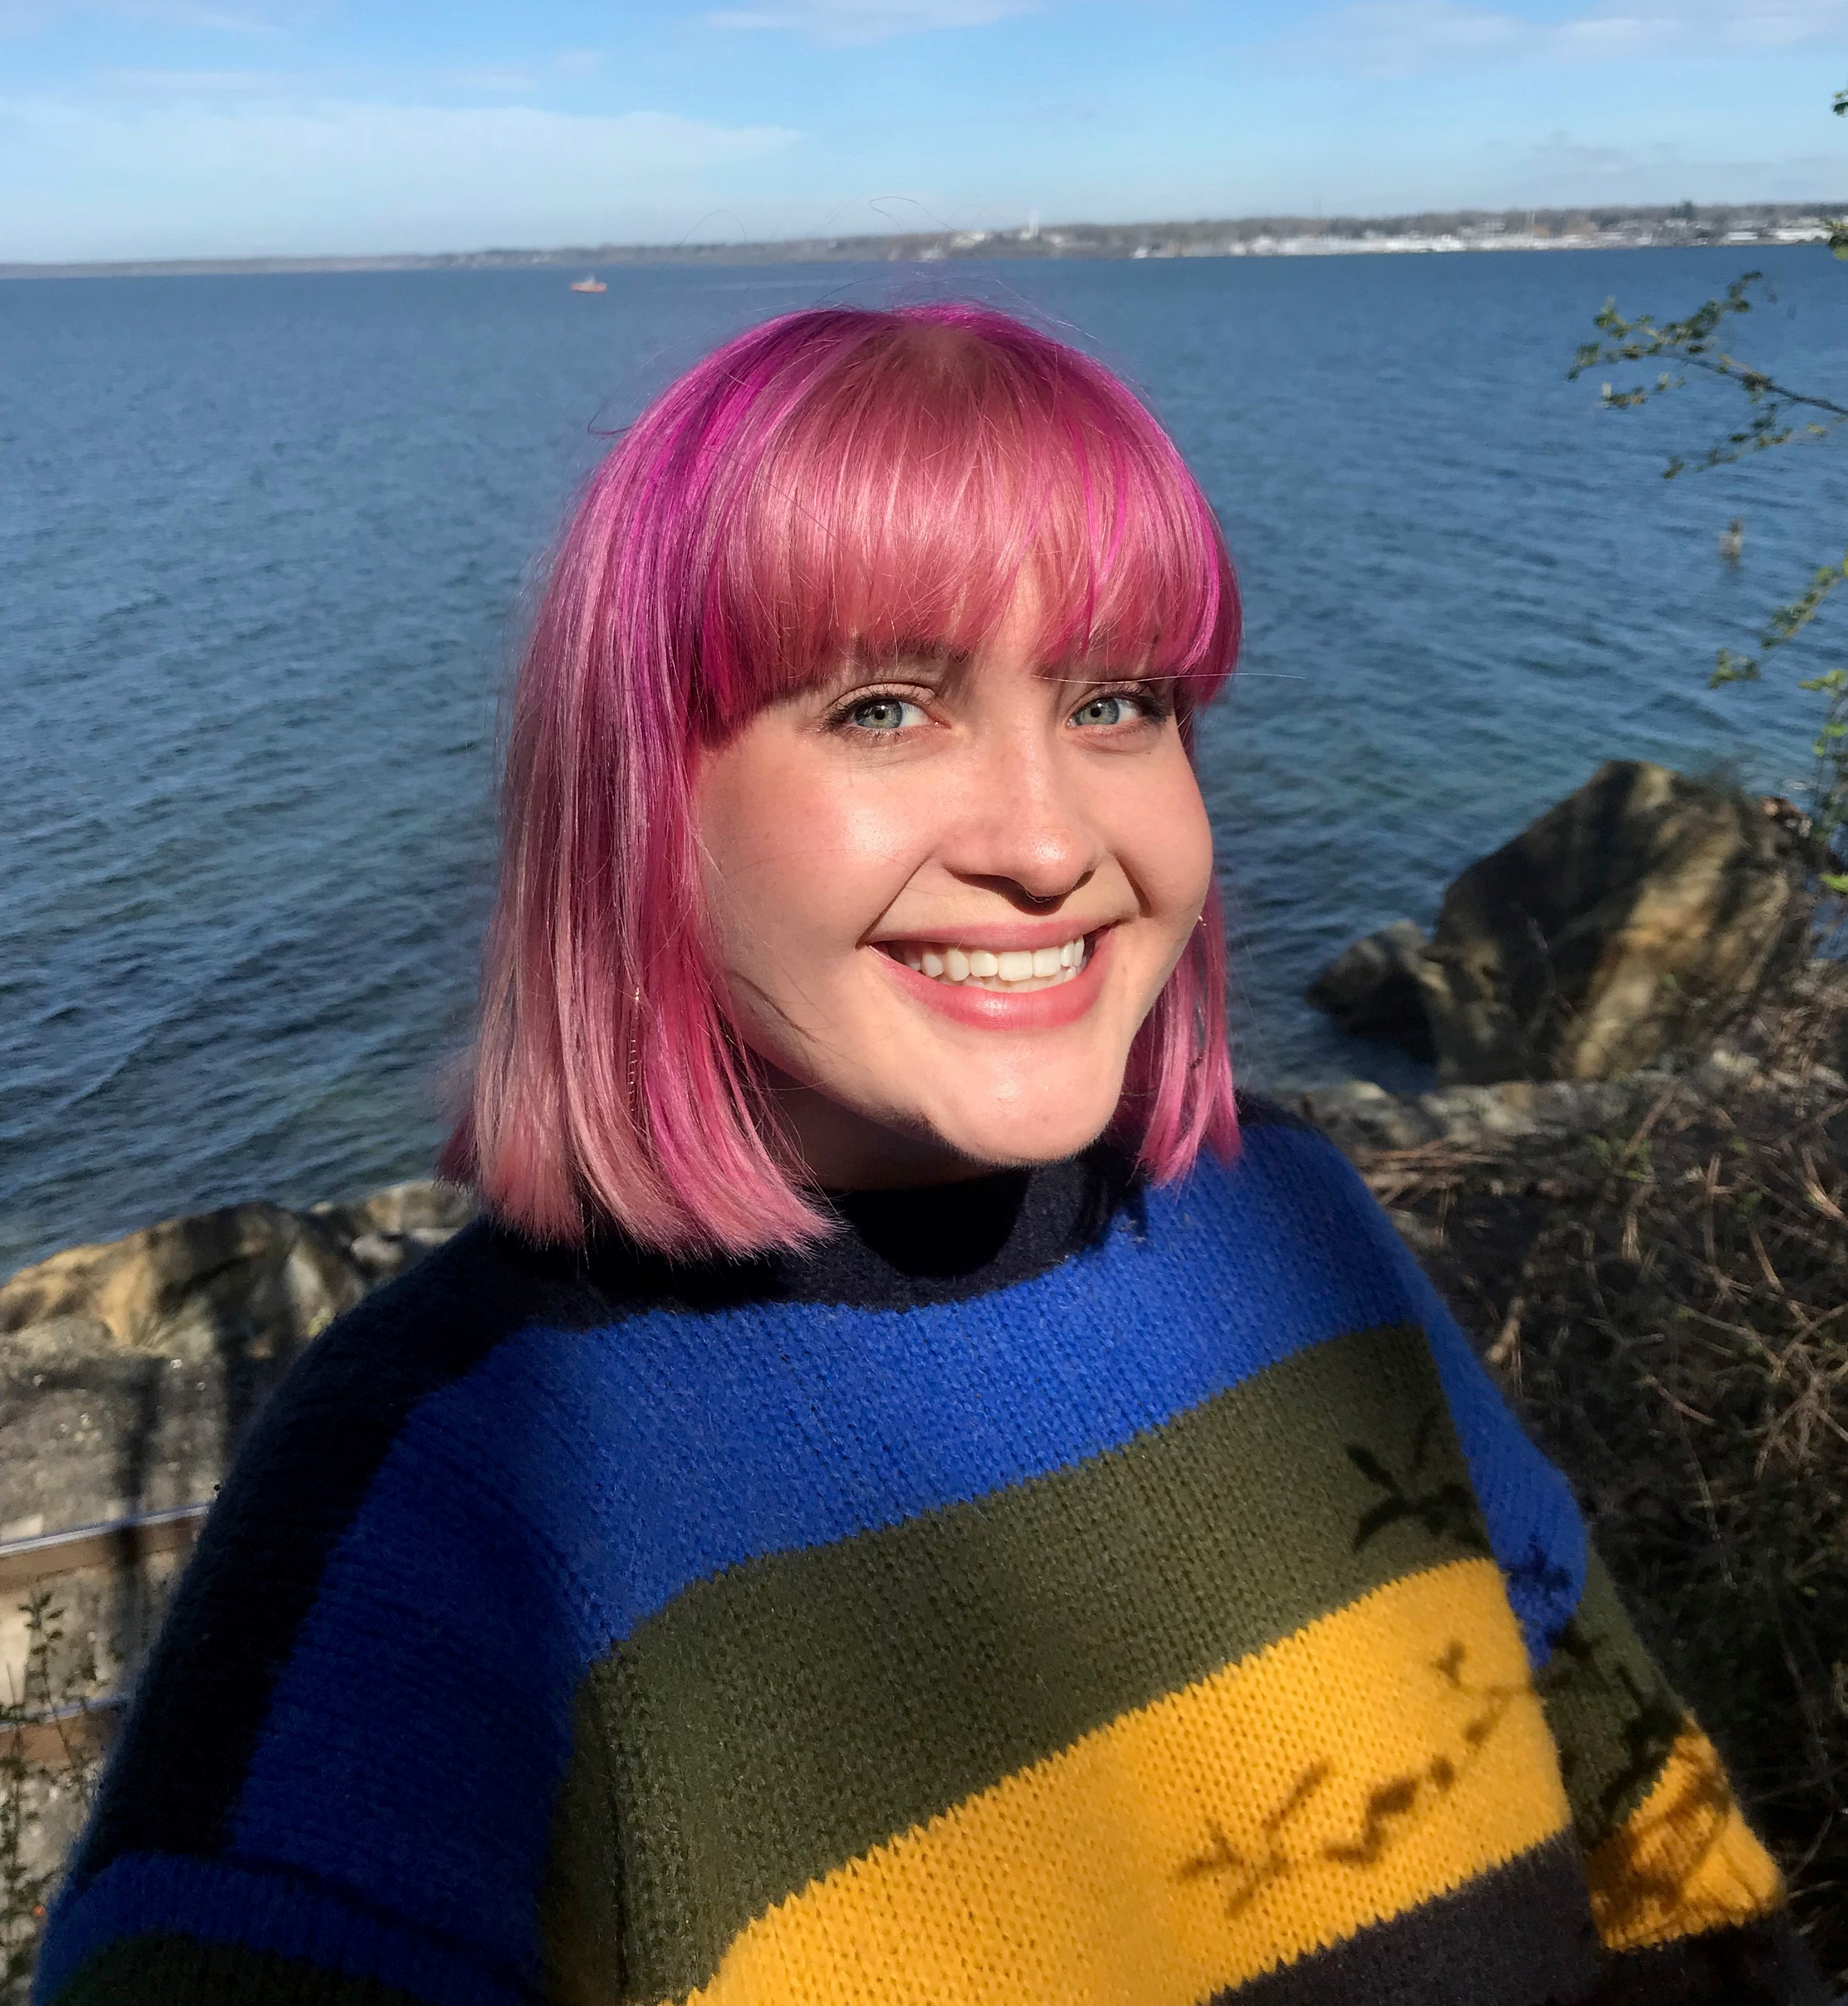 Shannon, with pink hair and wearing a boldy striped sweater, posing in front of a rocky shoreline